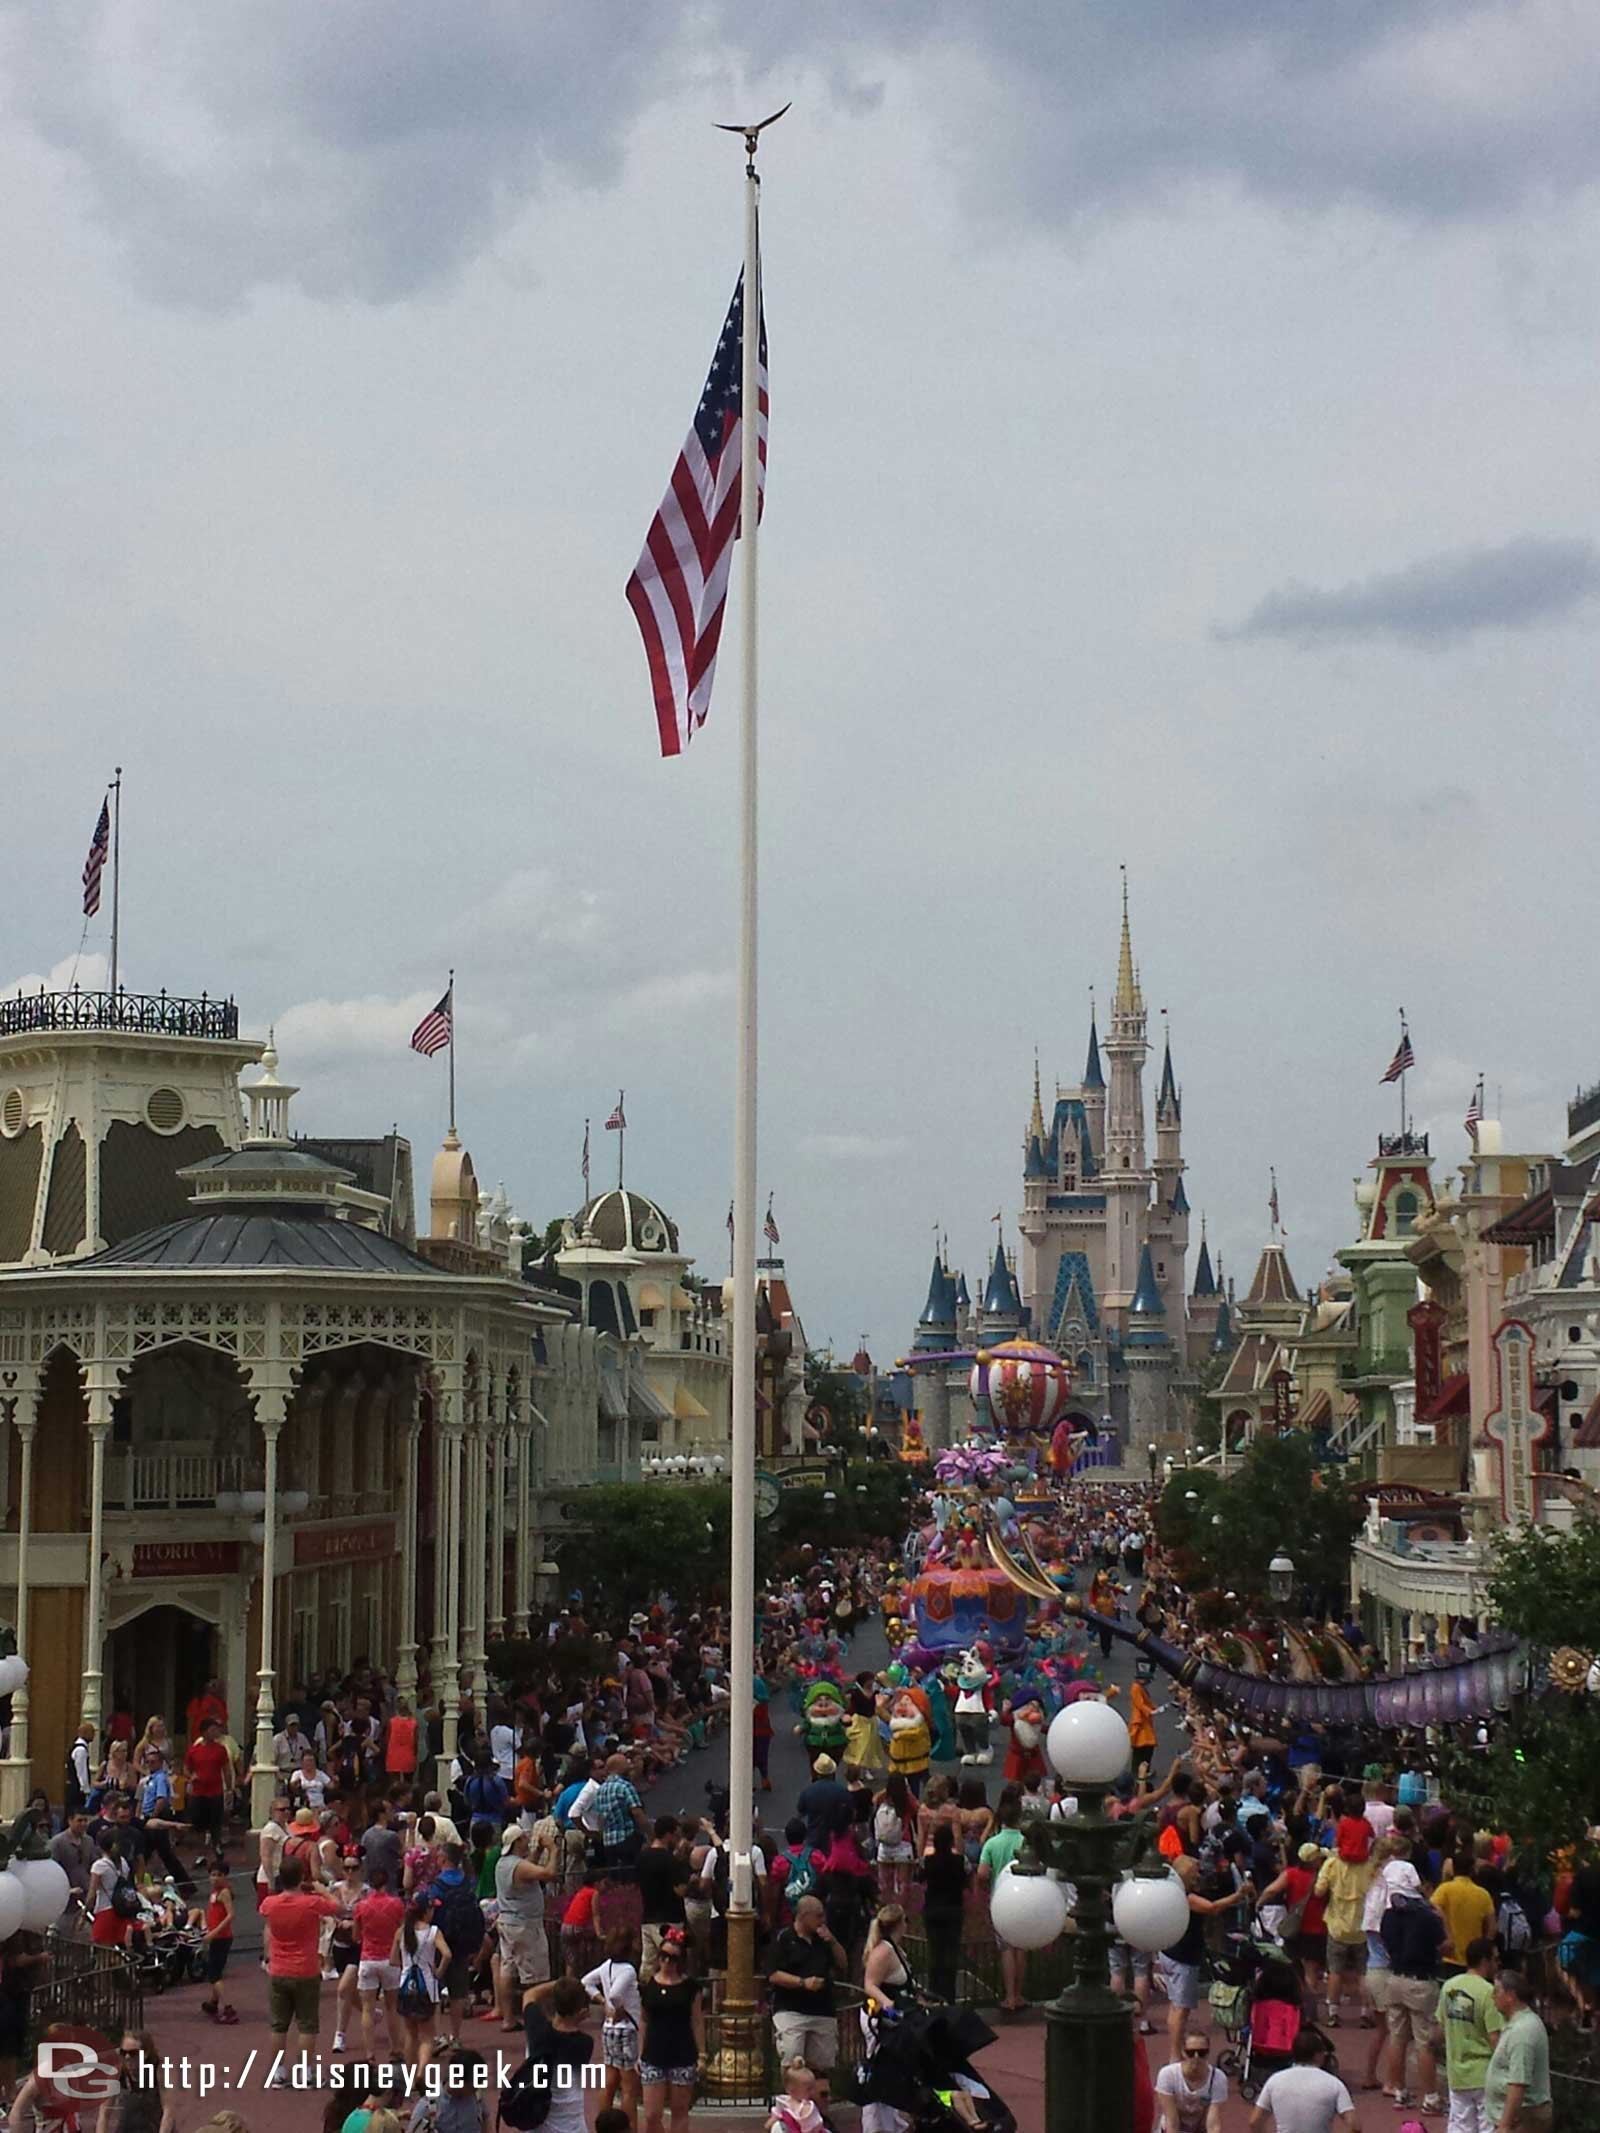 Festival of Fantasy parade #WDW Magic Kingdom making its way down Main Street